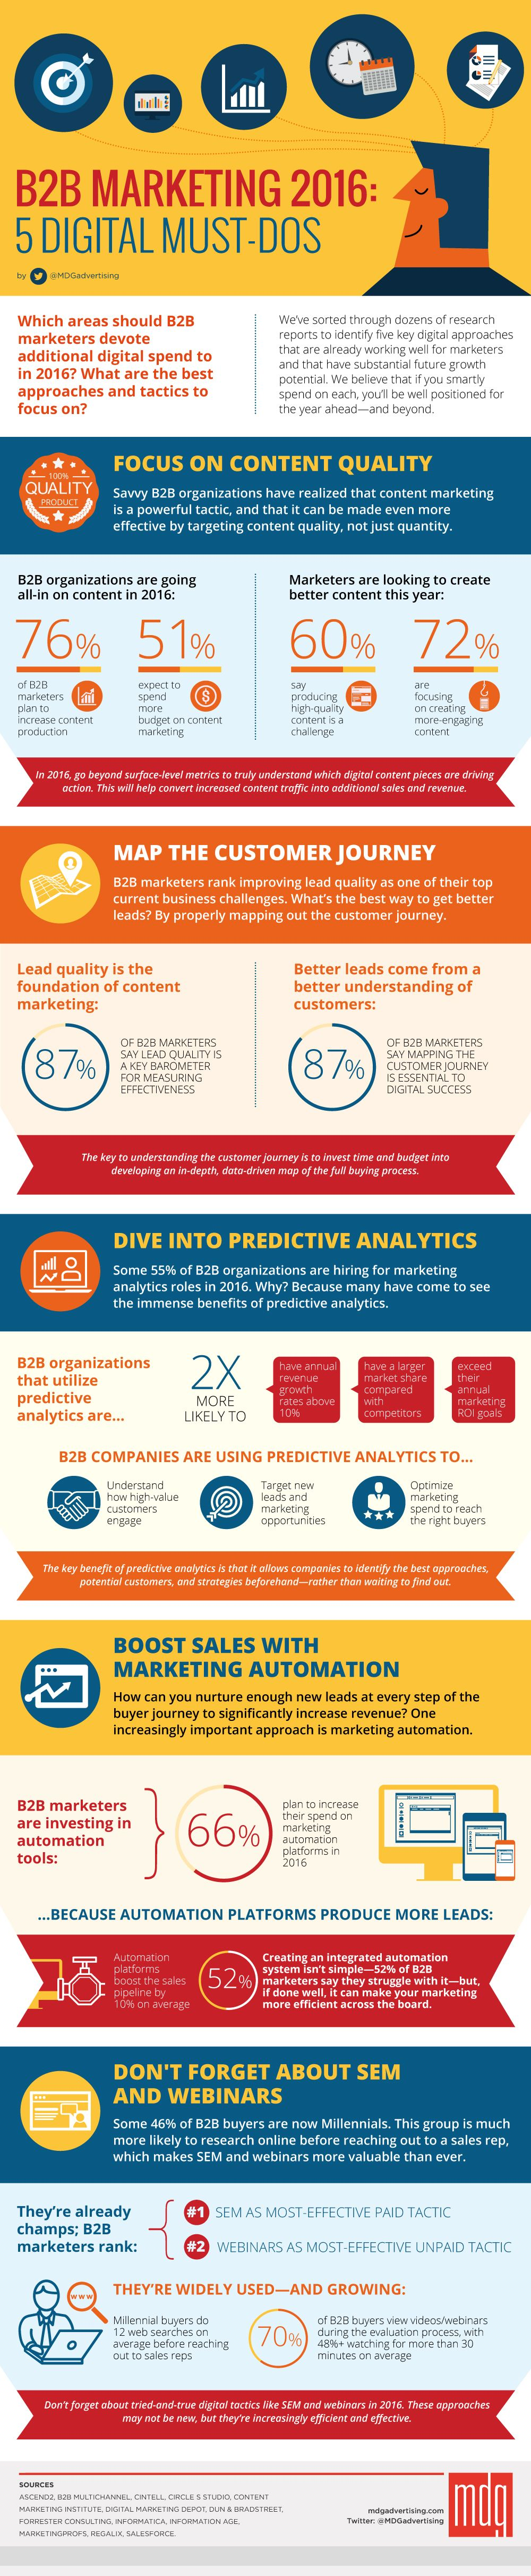 Creating a b2b digital marketing plan for 2017 infographic smart - B2b Marketing 2016 5 Digital Must Dos Infographic Our New